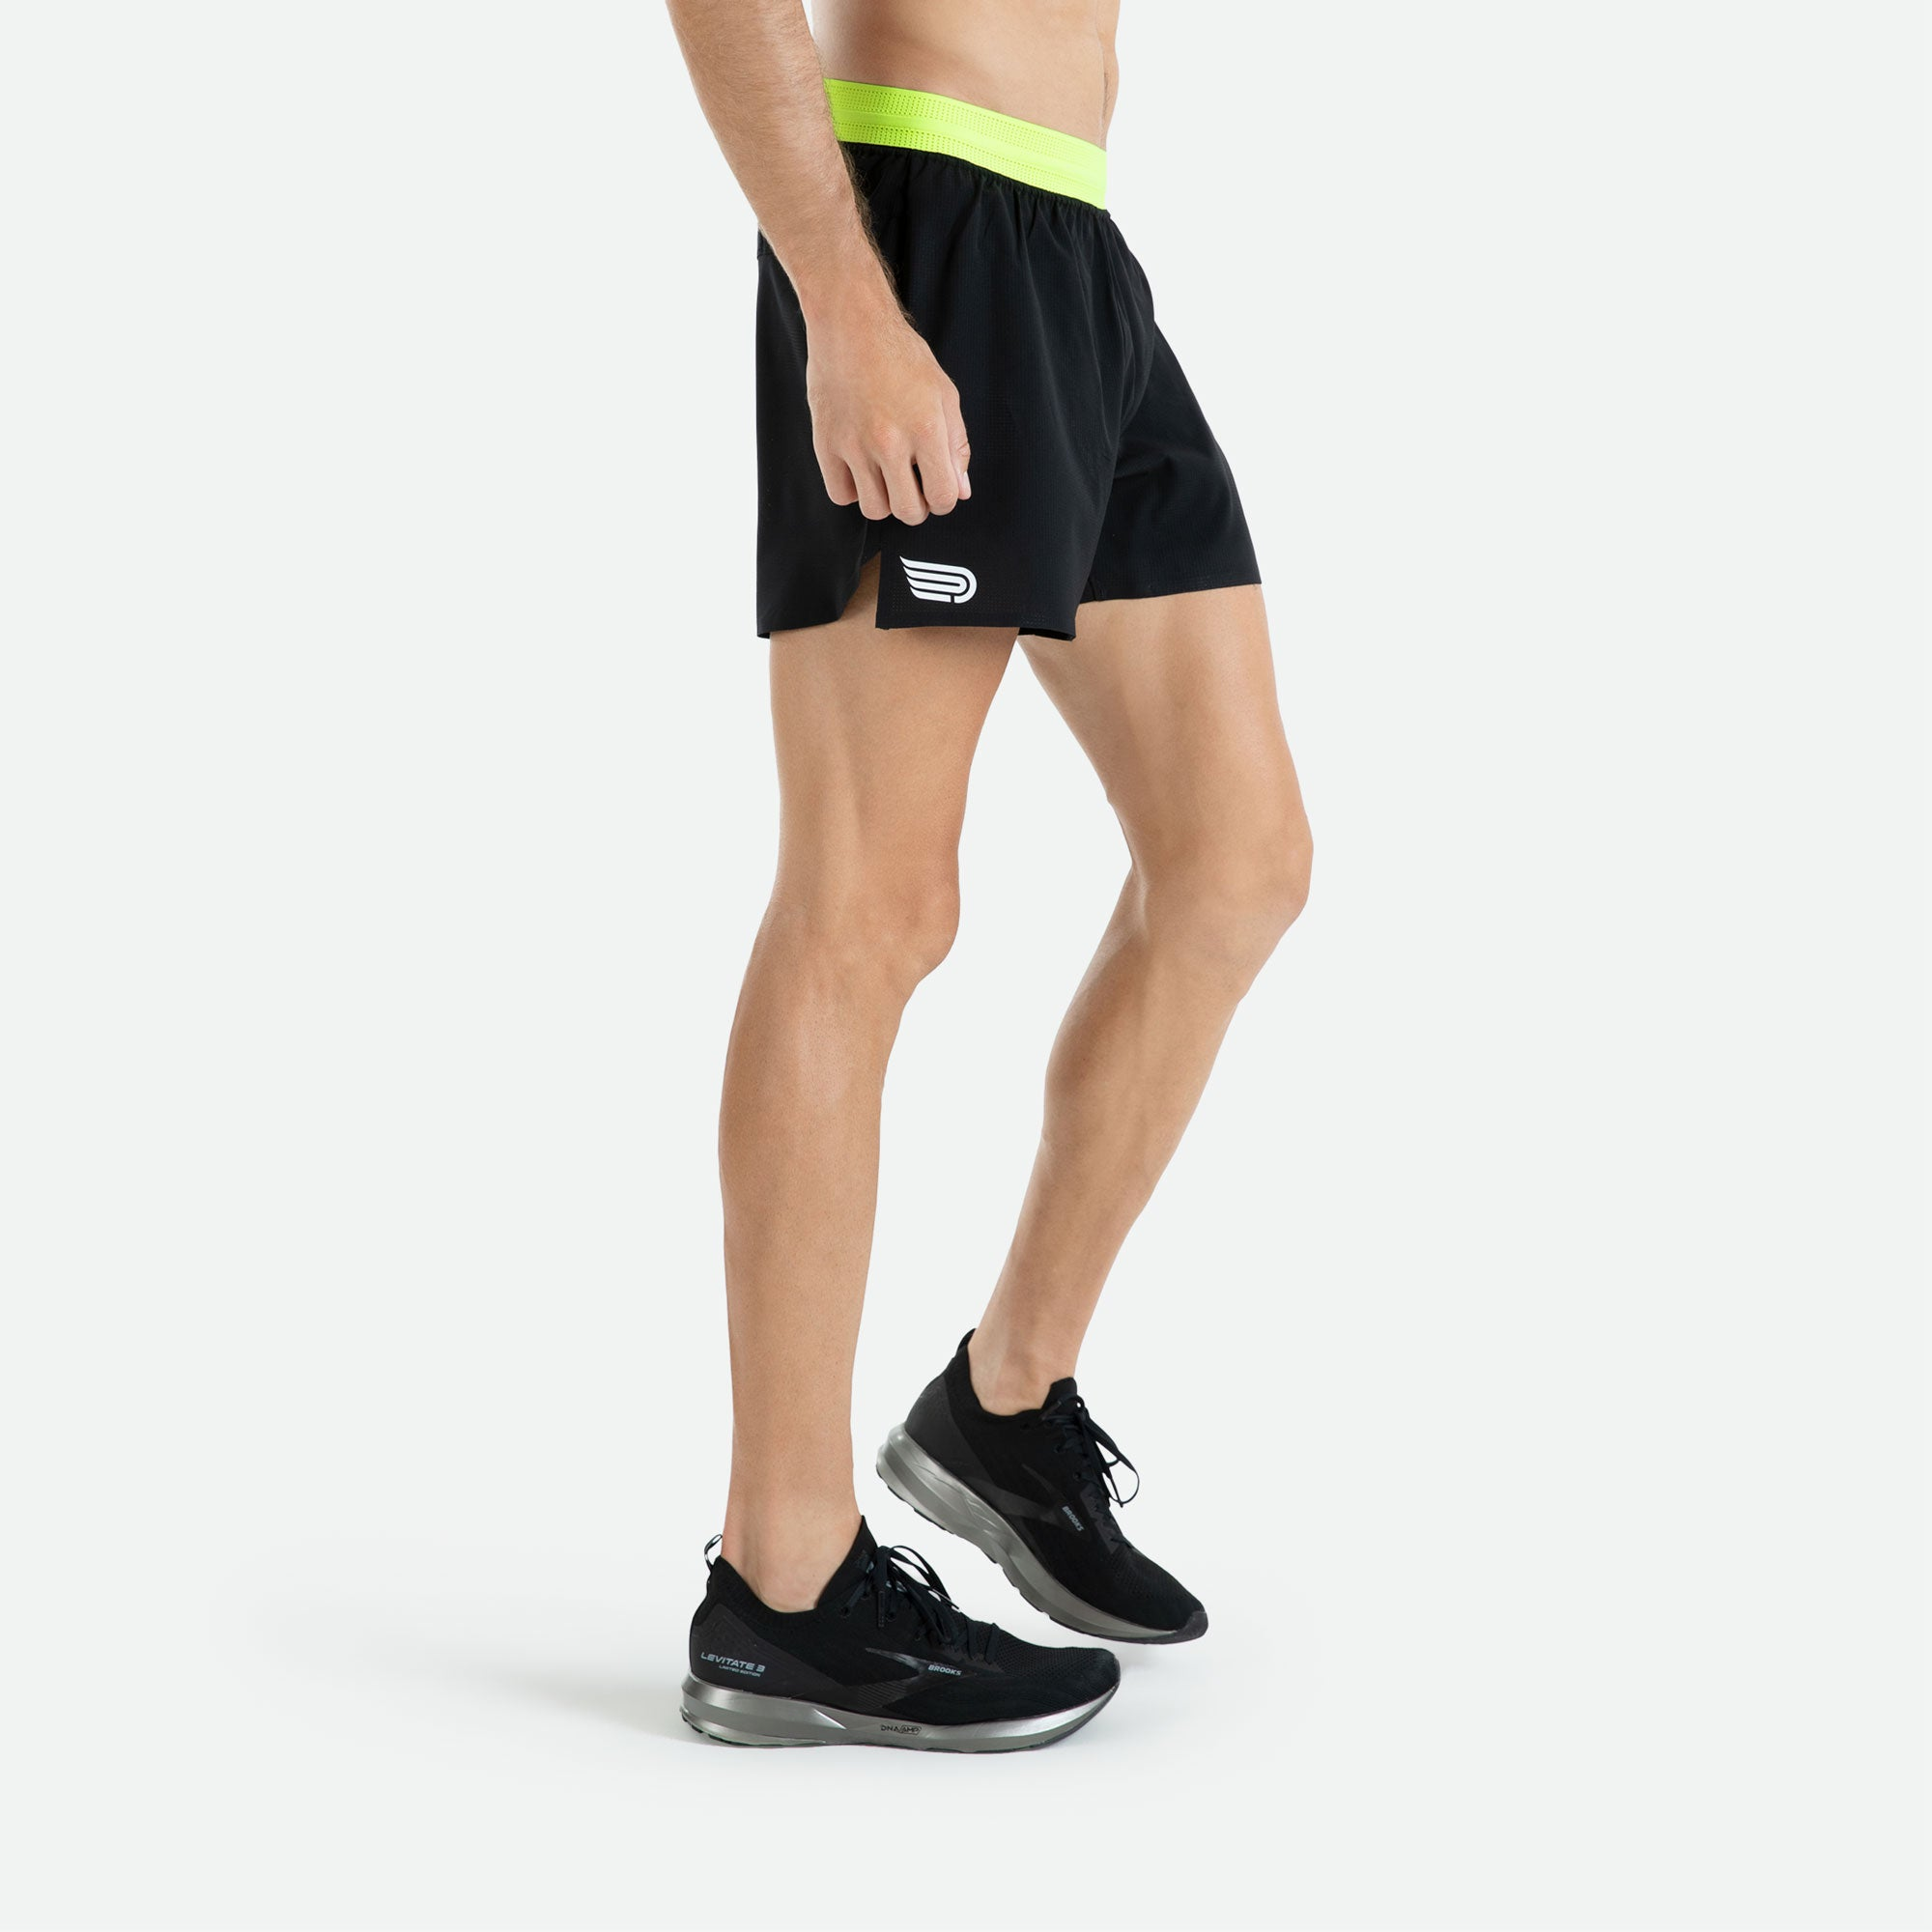 Italian Framis bonded hems and side seams with our Pressio men's black Ārahi 4.5'' run short for low profile lightweight performance.